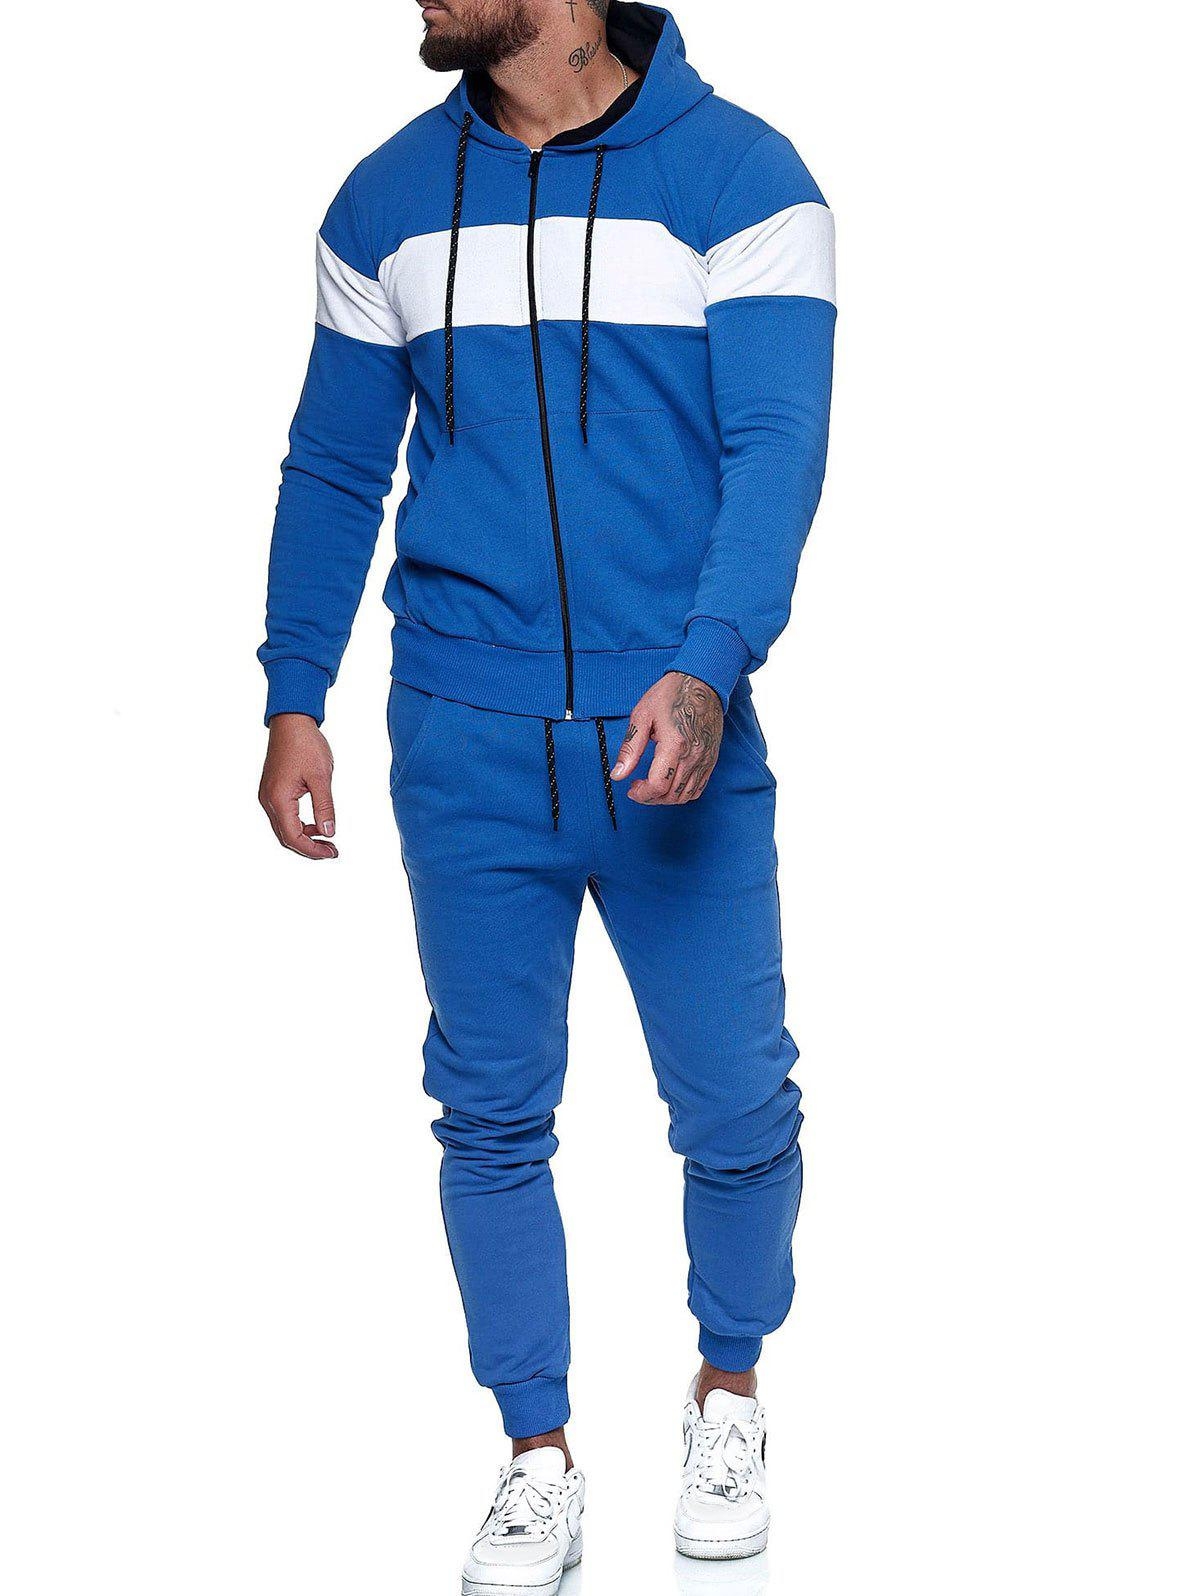 Fancy Contrast Zip Up Hoodie Jacket and Pants Sports Two Piece Set